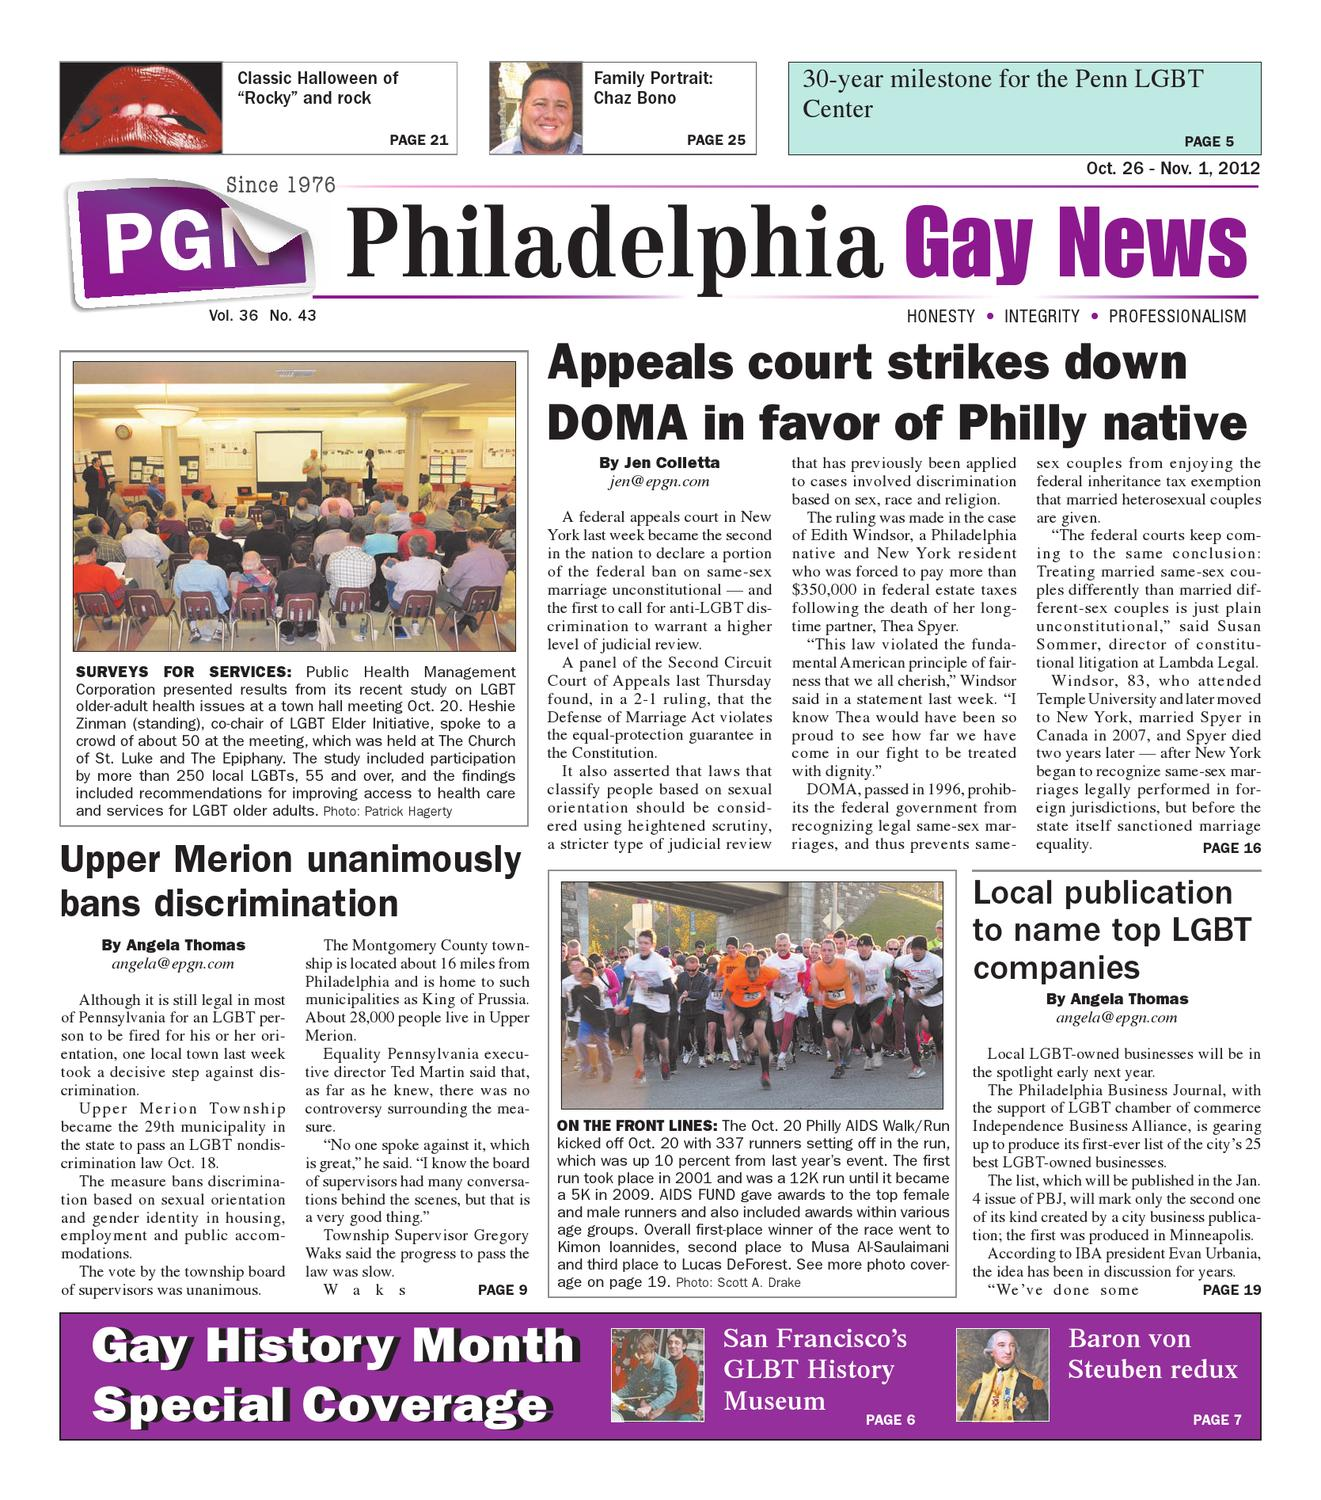 PGN 10 26 12 11 1 12 edition by The Philadelphia Gay News issuu